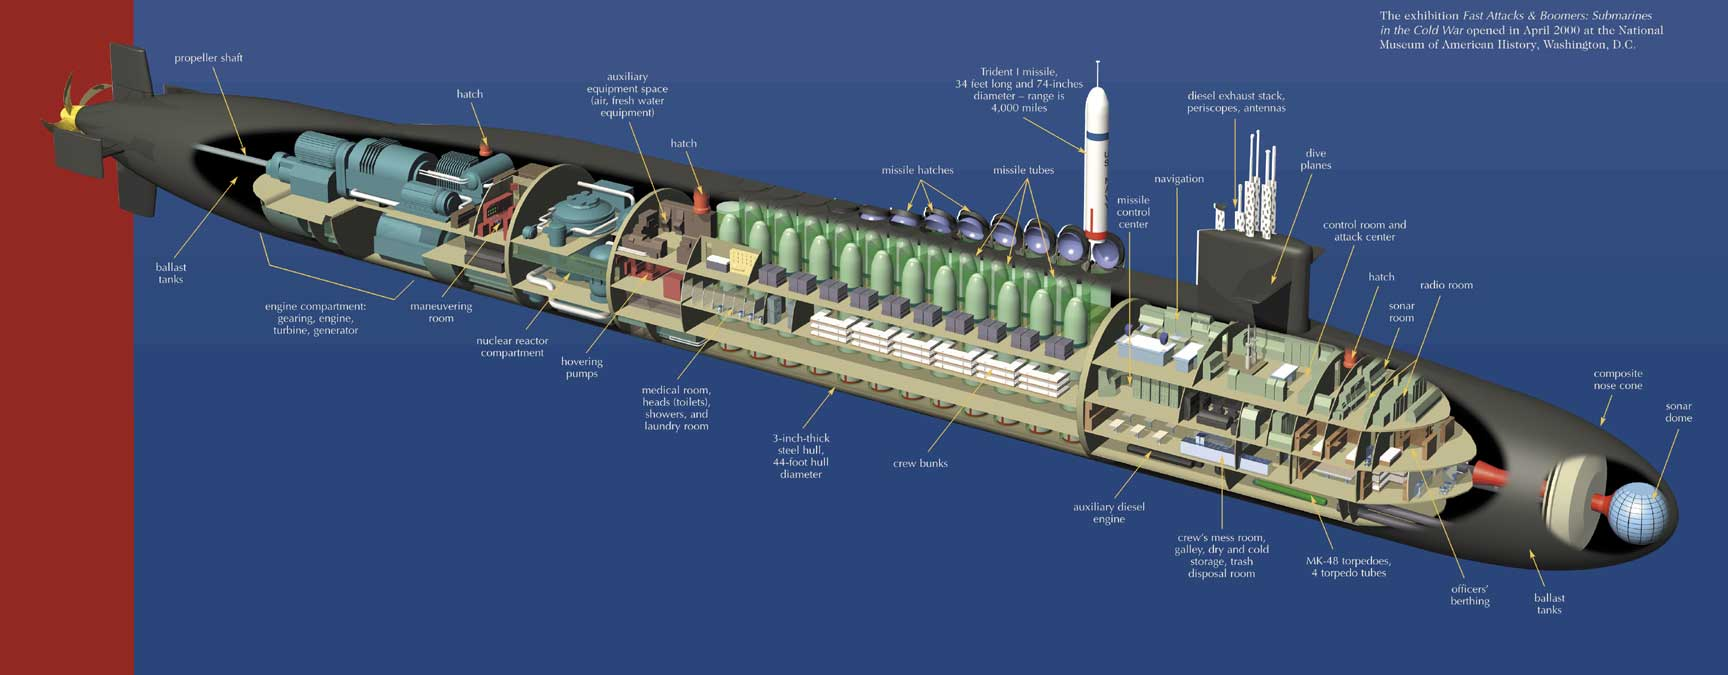 Us navy museum cold war gallery submarines forty one for freedom pooptronica